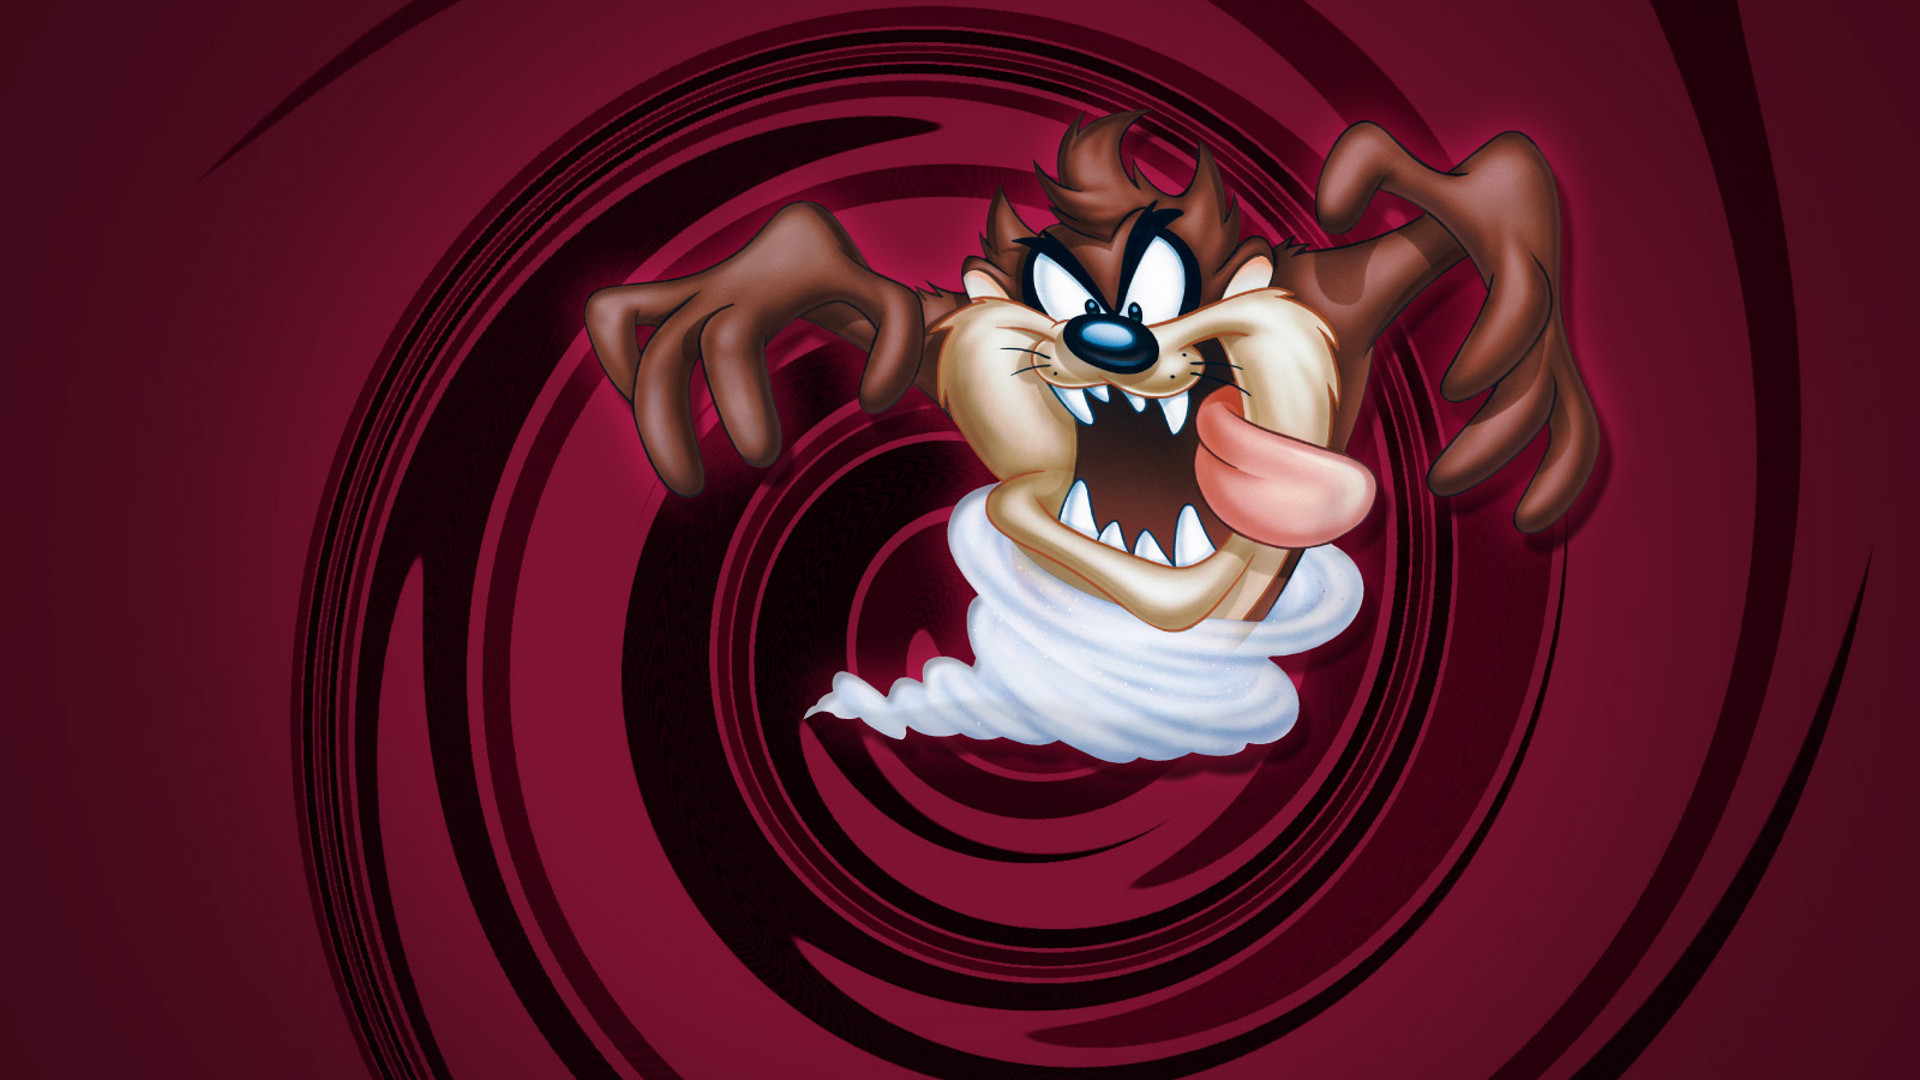 Tazmania Wallpaper Iphone The Tasmanian Devil Real Name Is Taz From Looney Tunes